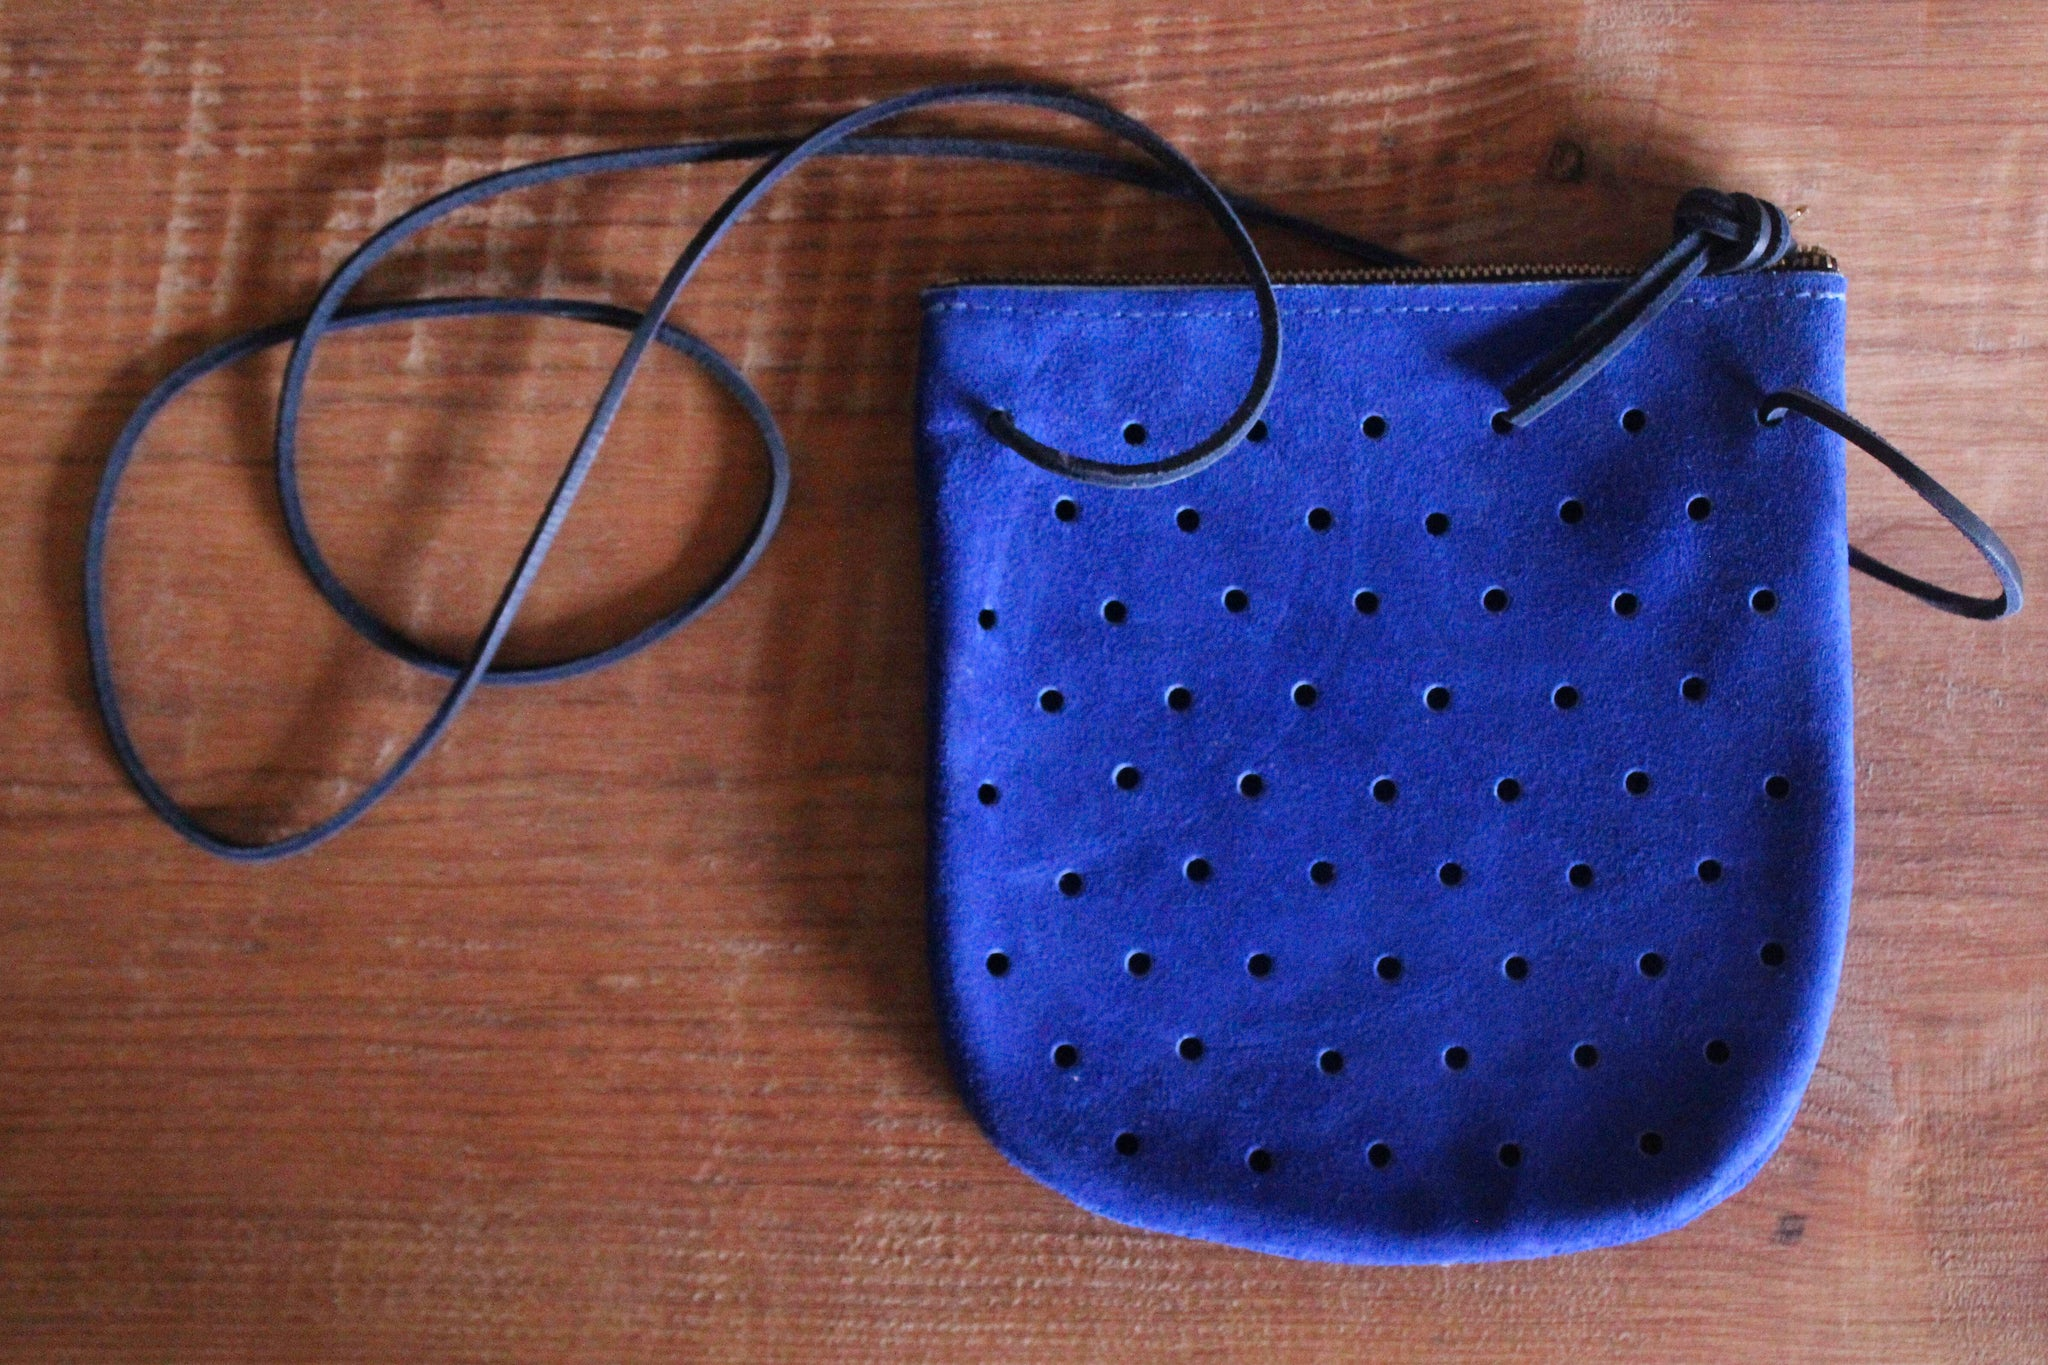 Pine + Boon Perforated Leather Bag